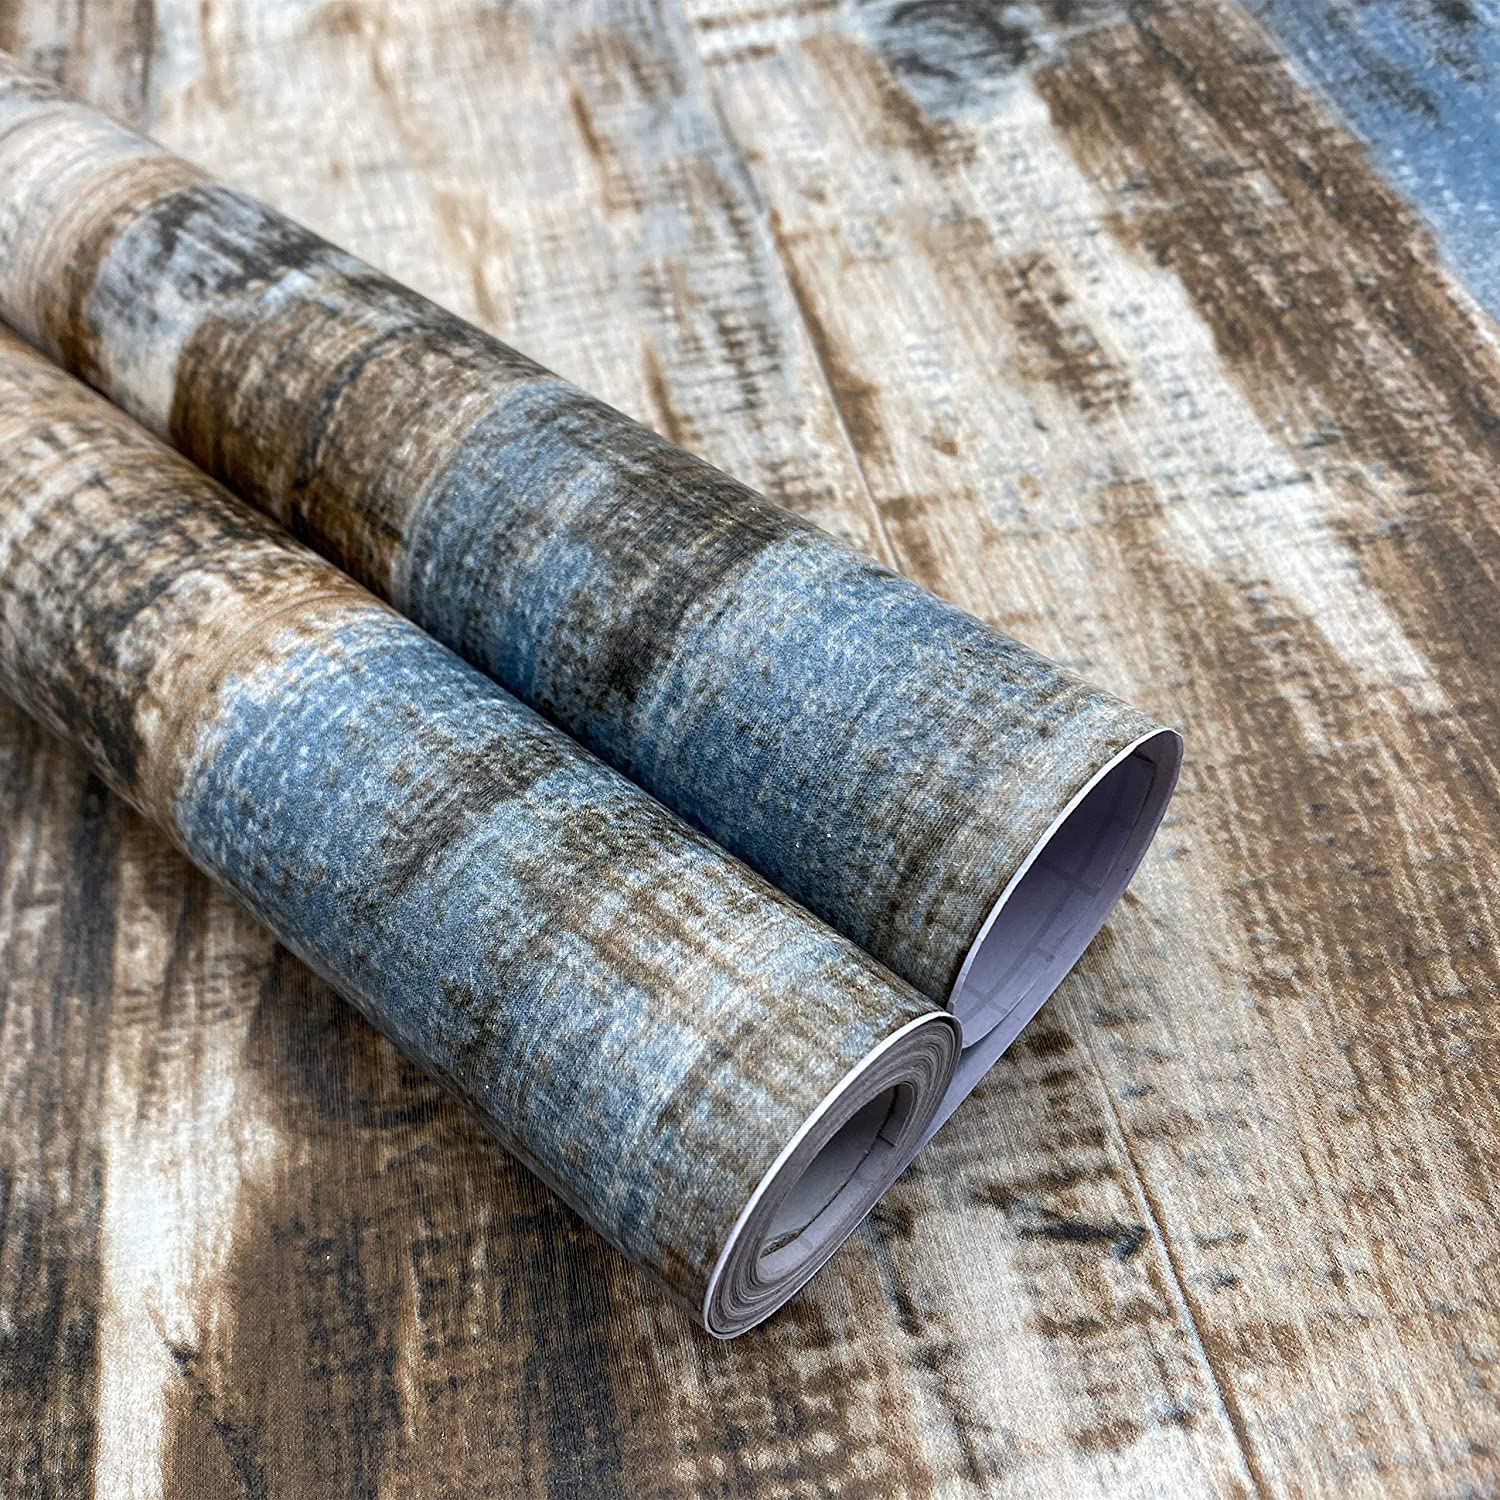 17.71'' x 236'' Peel and Stick Wood Wallpaper Removable Distressed Wood Contact Paper Self-Adhesive Wallpaper Retro Wood Plank Wall Covering Decoration Kitchen Countertop Furniture DIY